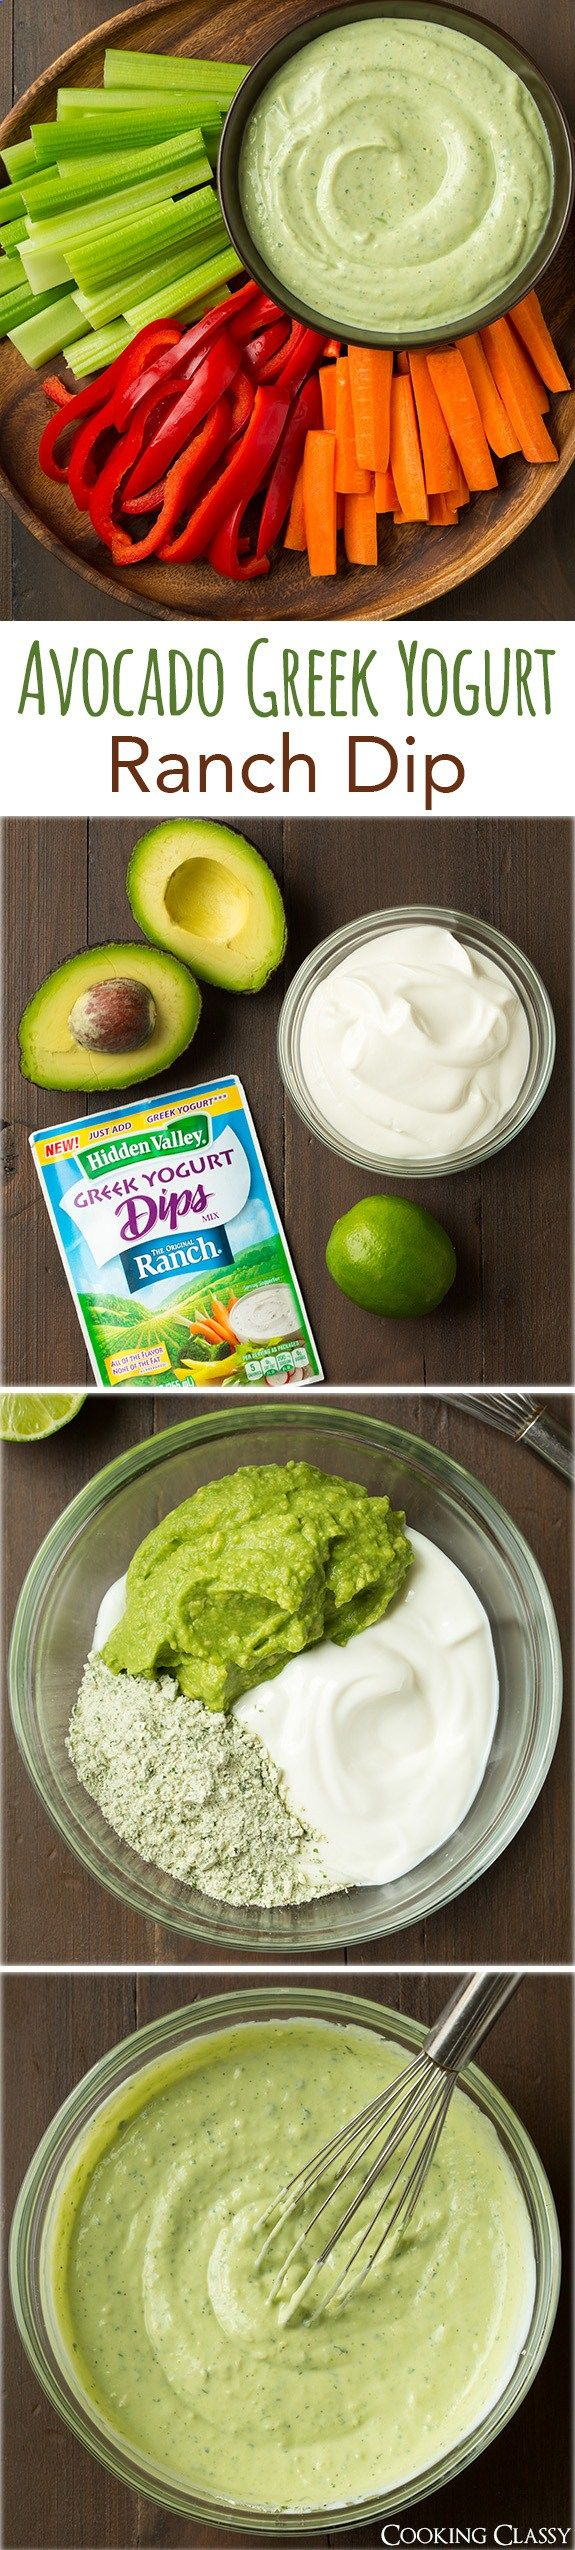 Avocado Greek Yogurt Ranch Dip - only 4 ingredients and a breeze to make! So delicious, even my kids loved it! Its so good as a dip for grilled chicken too.